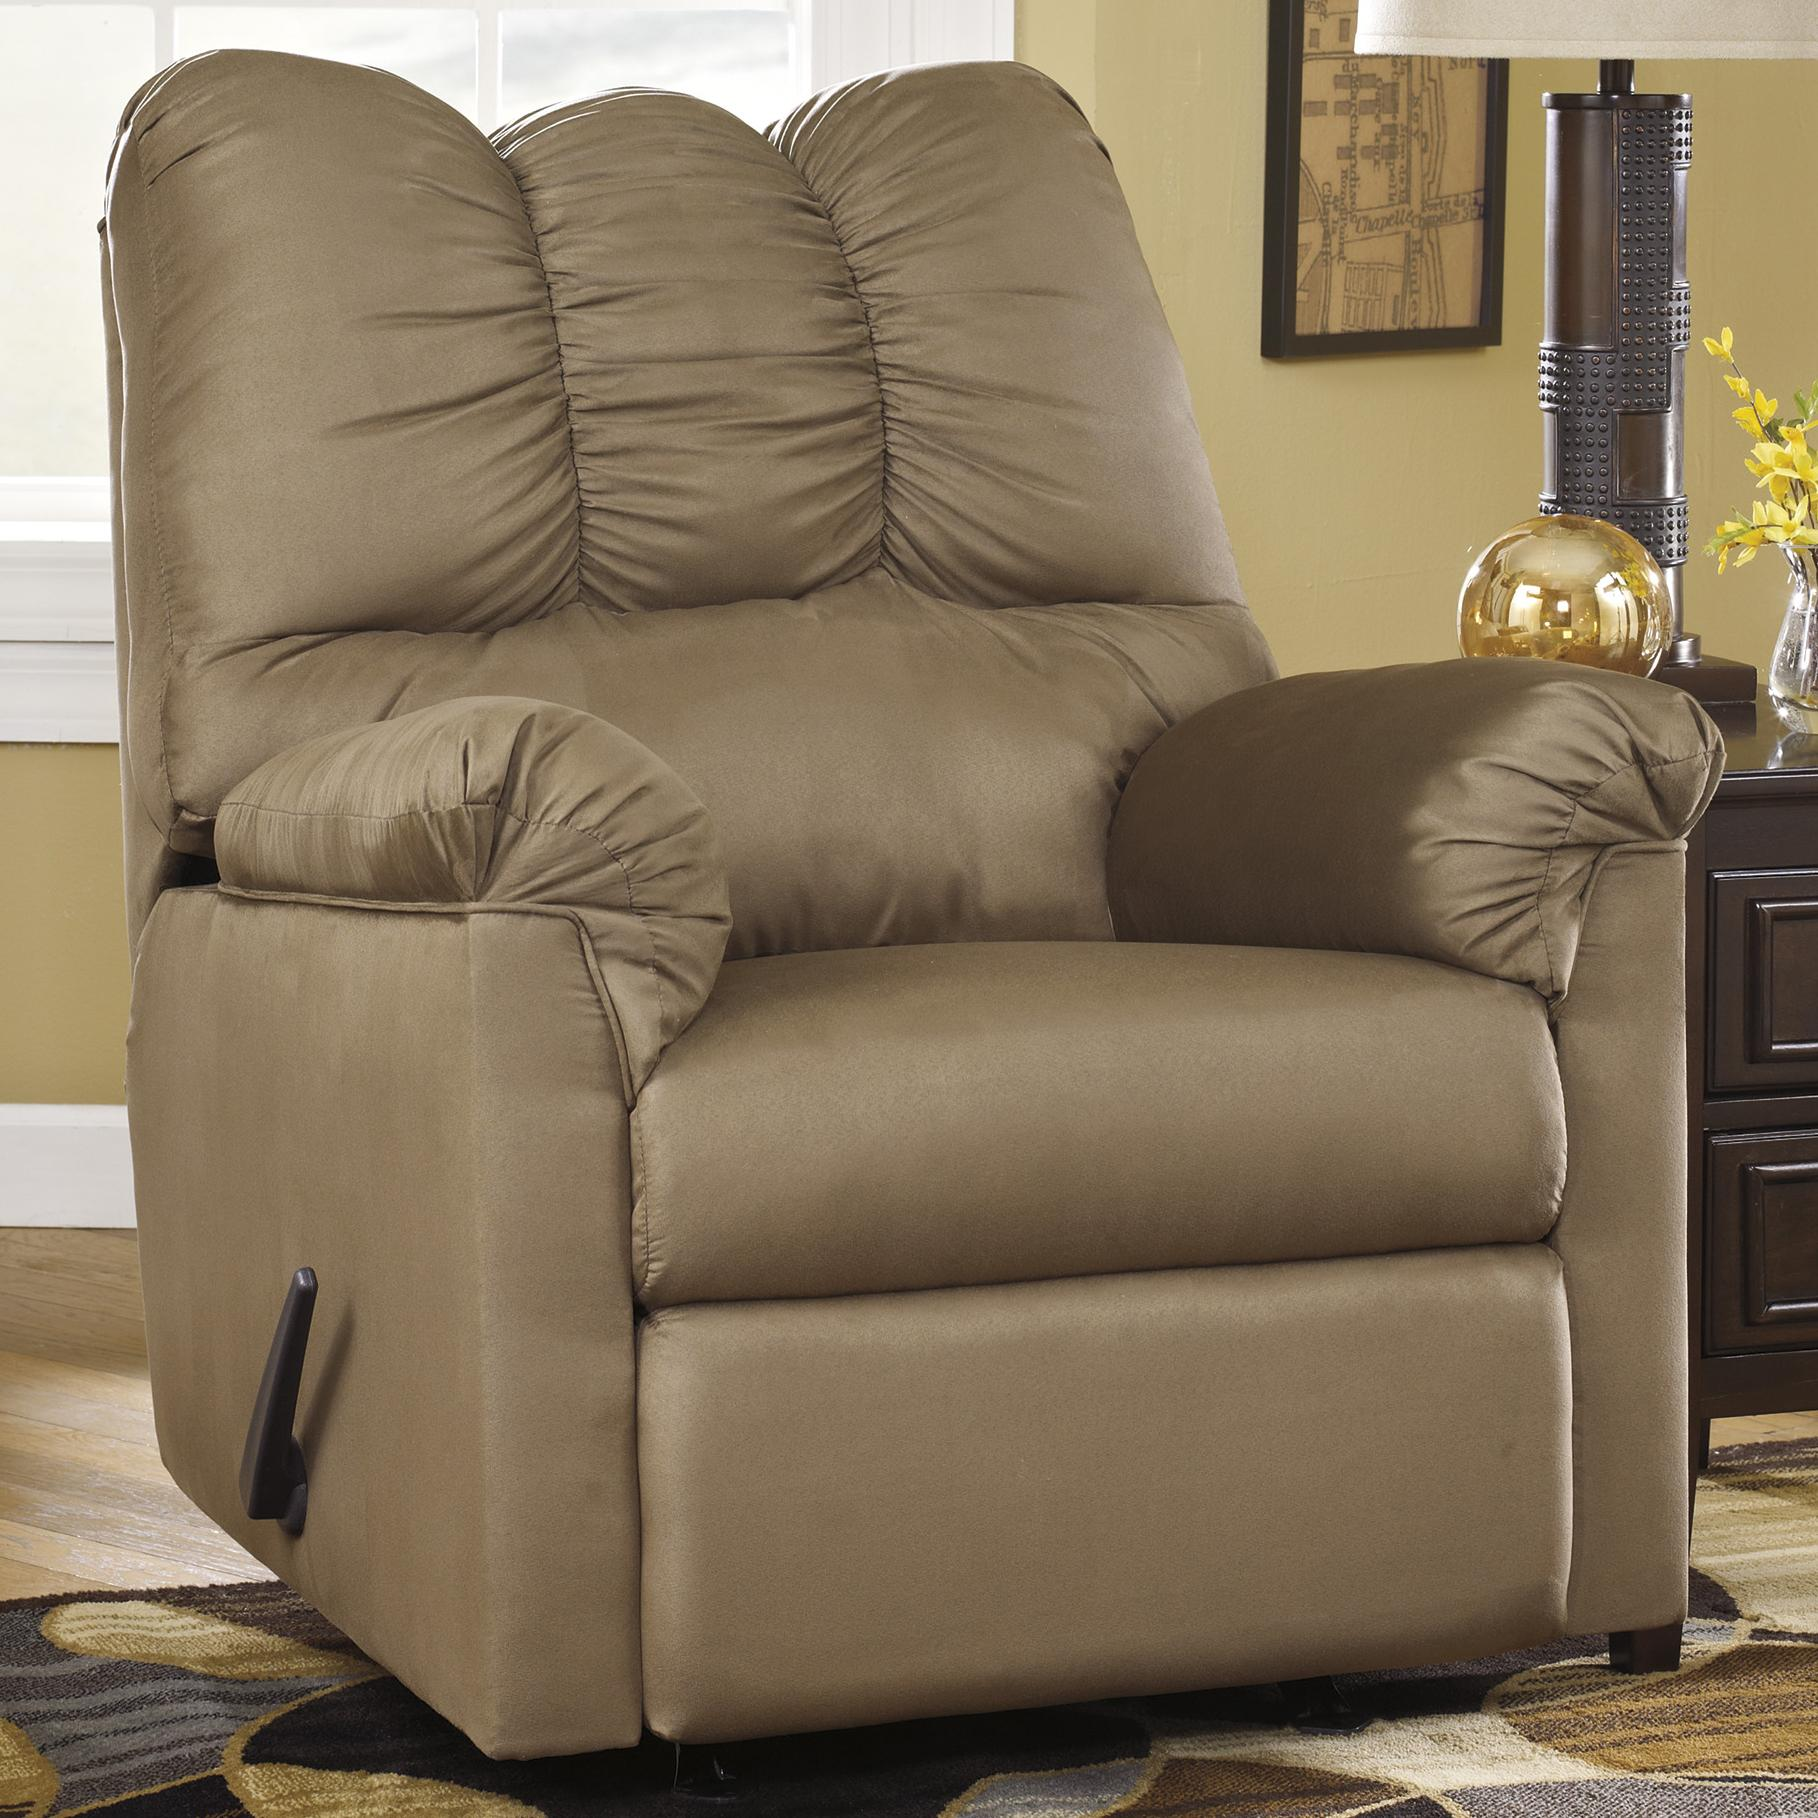 Signature Design by Ashley Darcy - Mocha Rocker Recliner - Item Number: 7500225